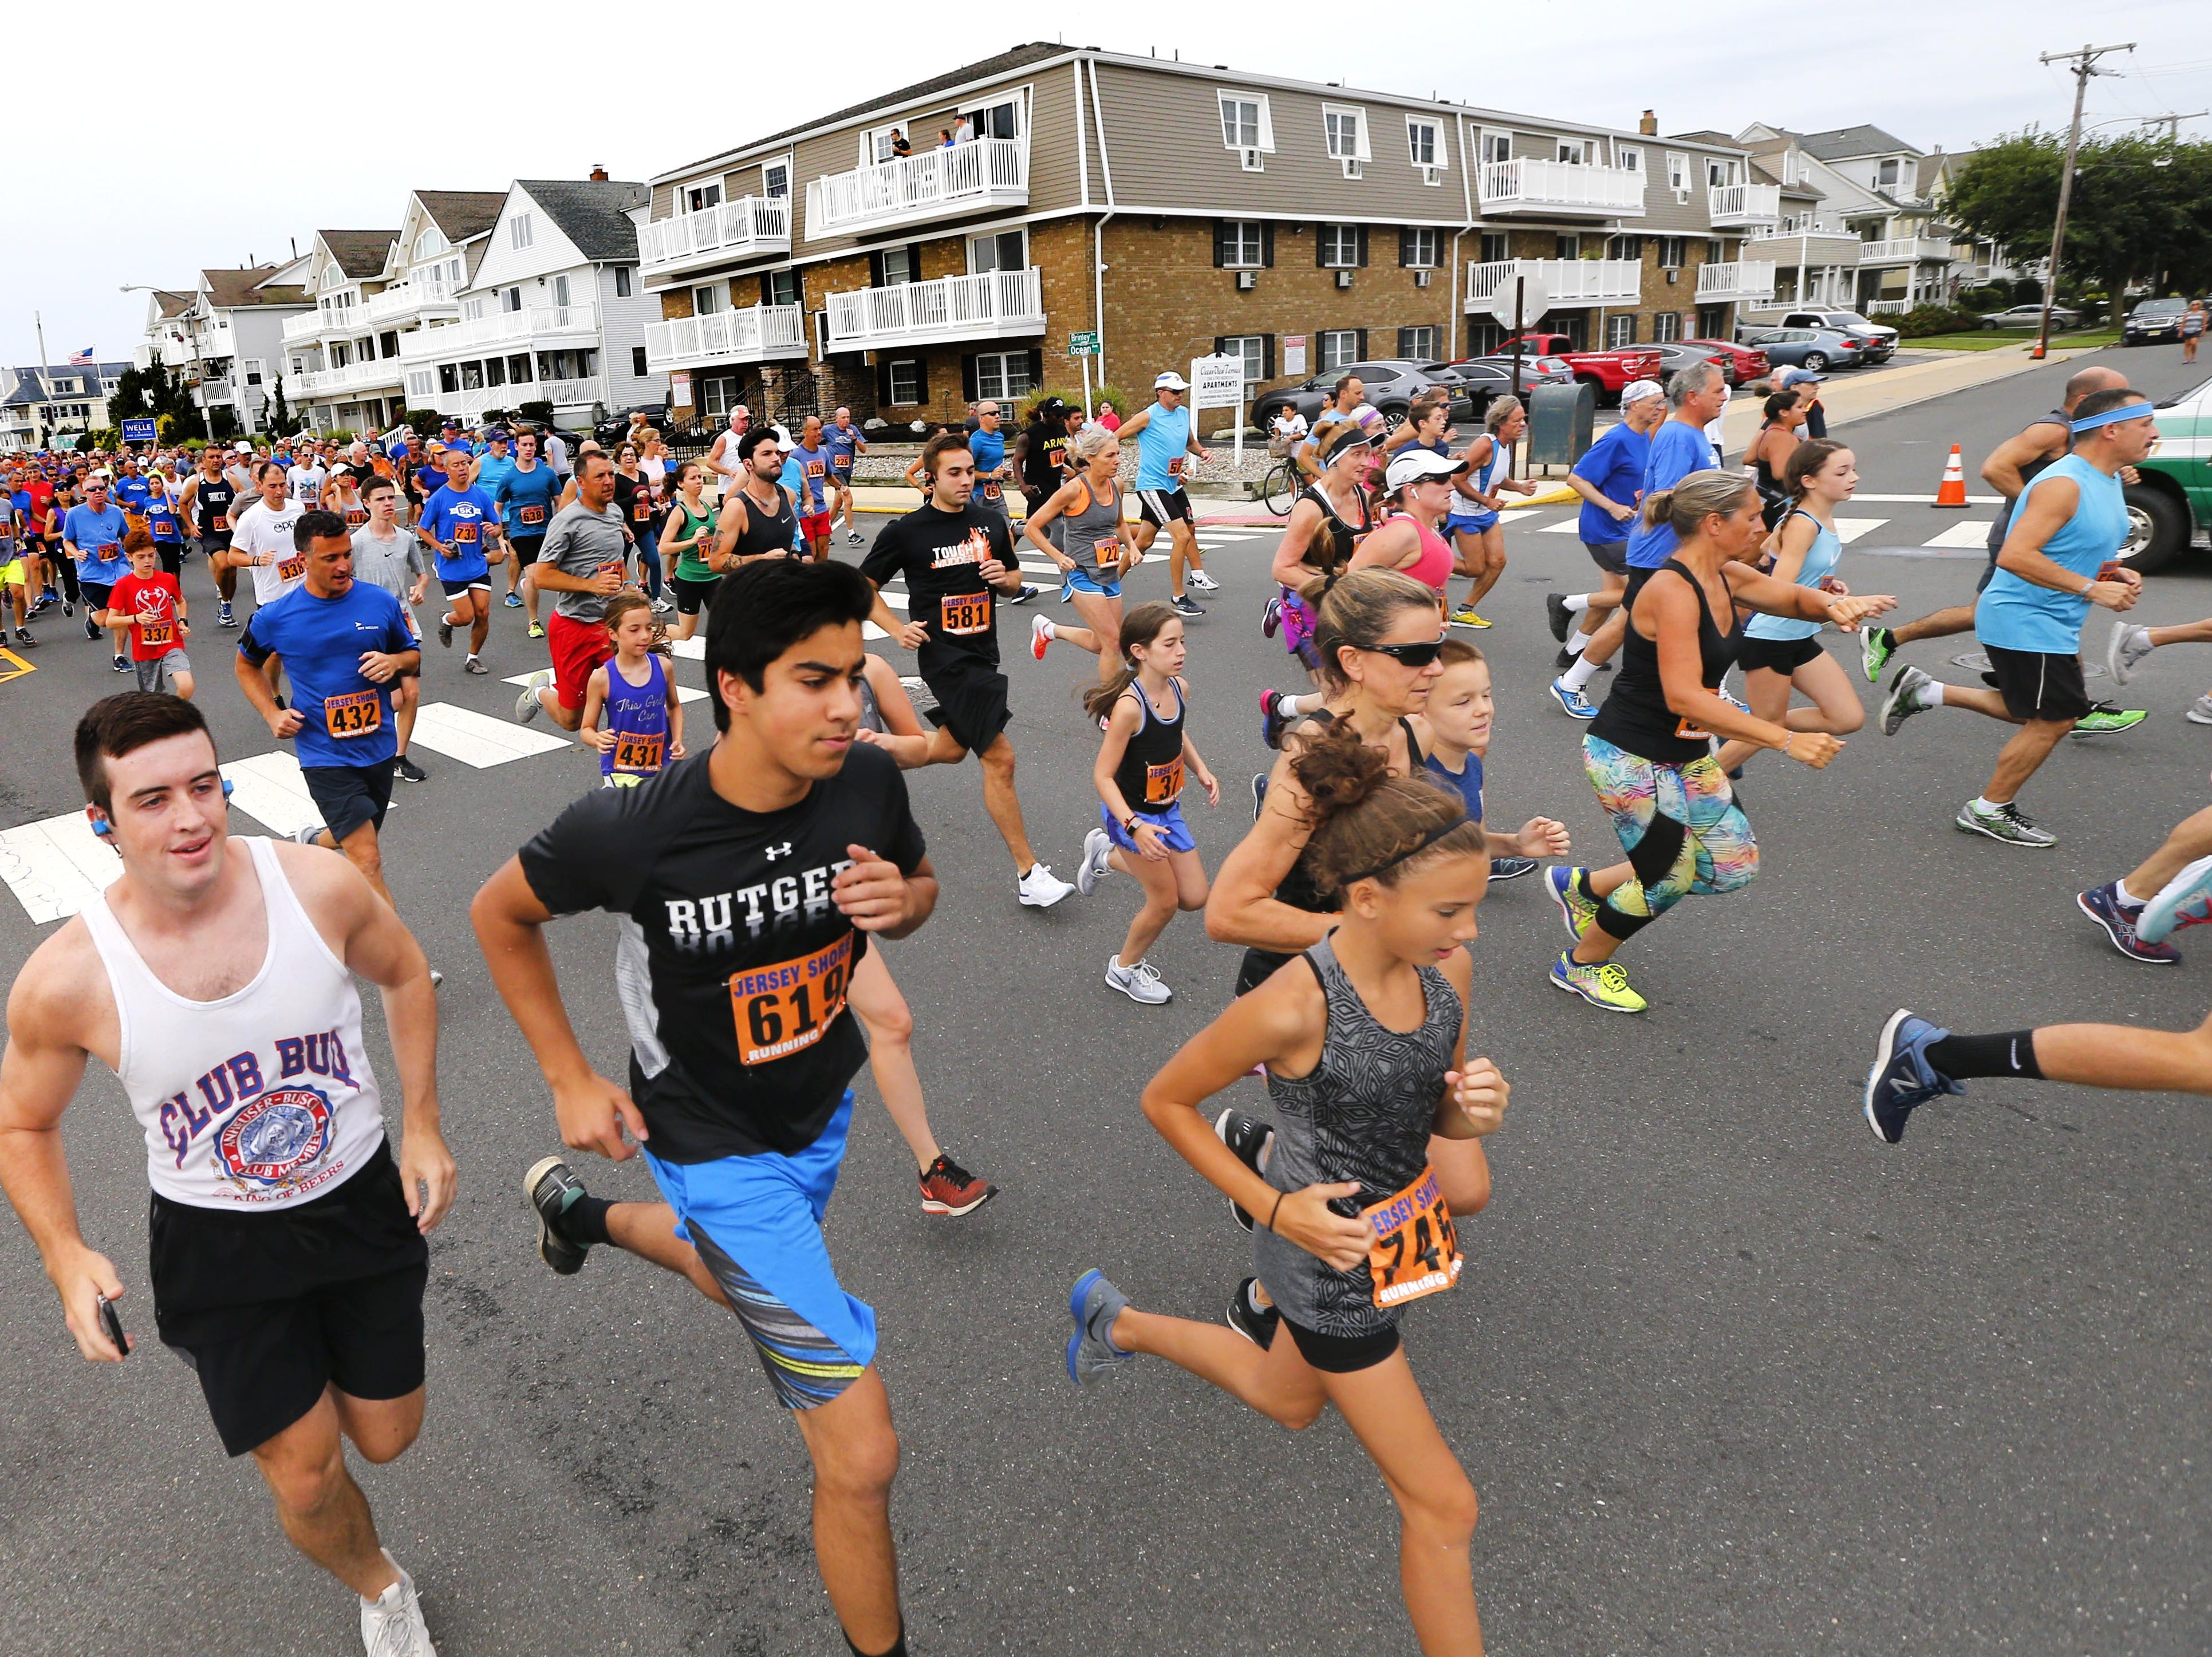 Runners participate in the Bradley Beach 5K race on Ocean Avenue in Bradley Beach, Saturday, Aug. 17, 2018.